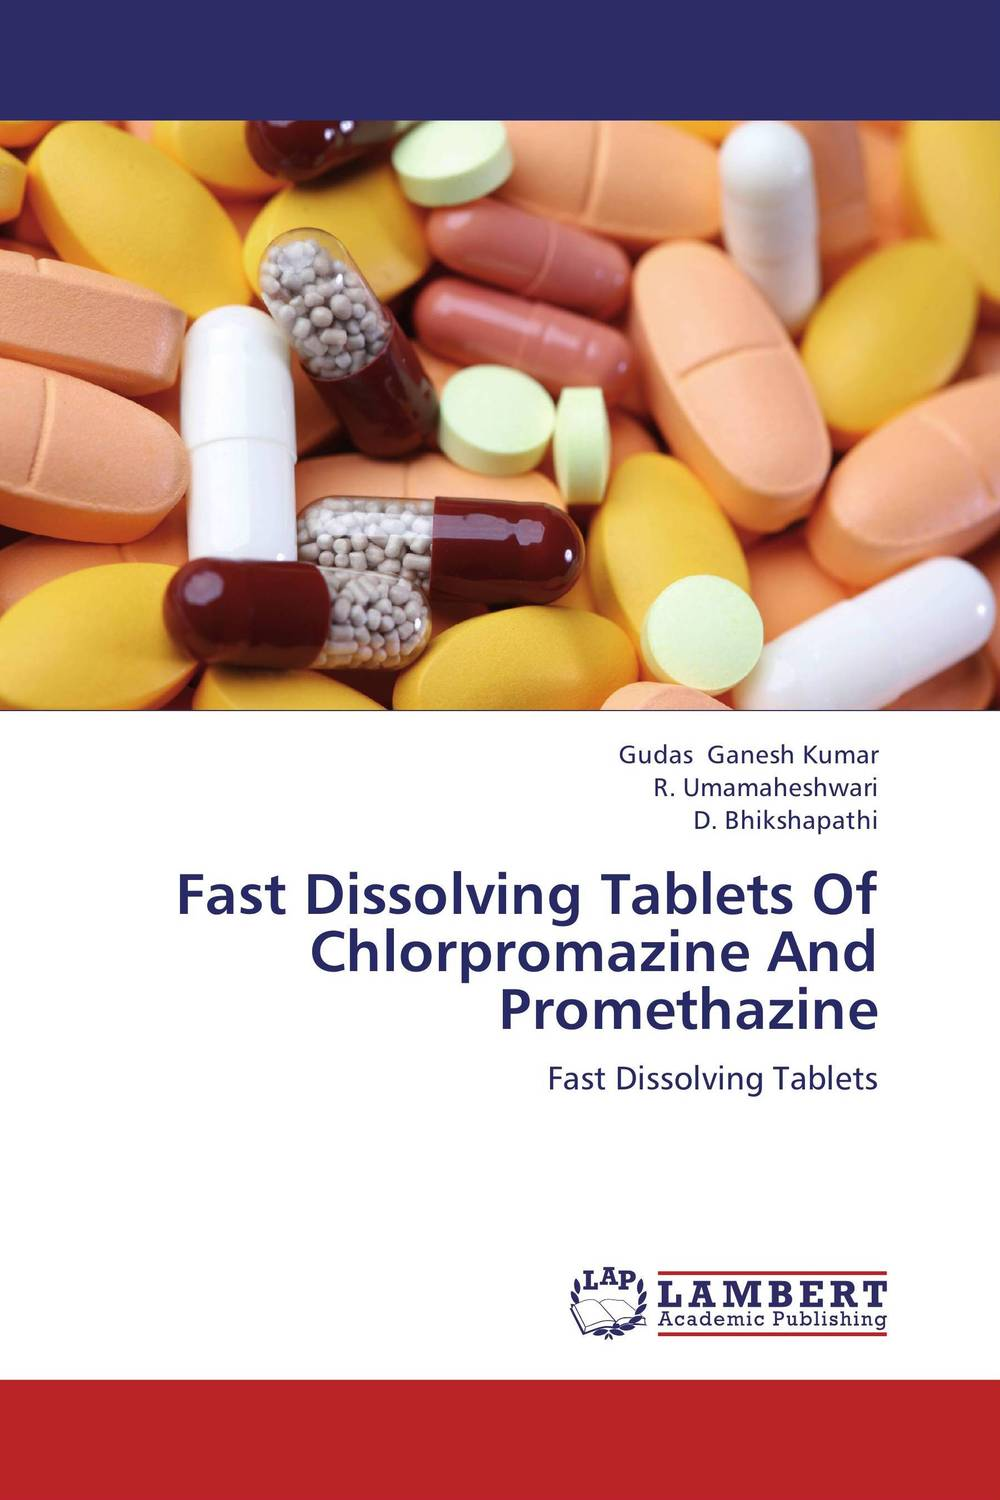 Fast Dissolving Tablets Of Chlorpromazine And Promethazine amita yadav kamal singh rathore and geeta m patel formulation evaluation and optimization of mouth dissolving tablets